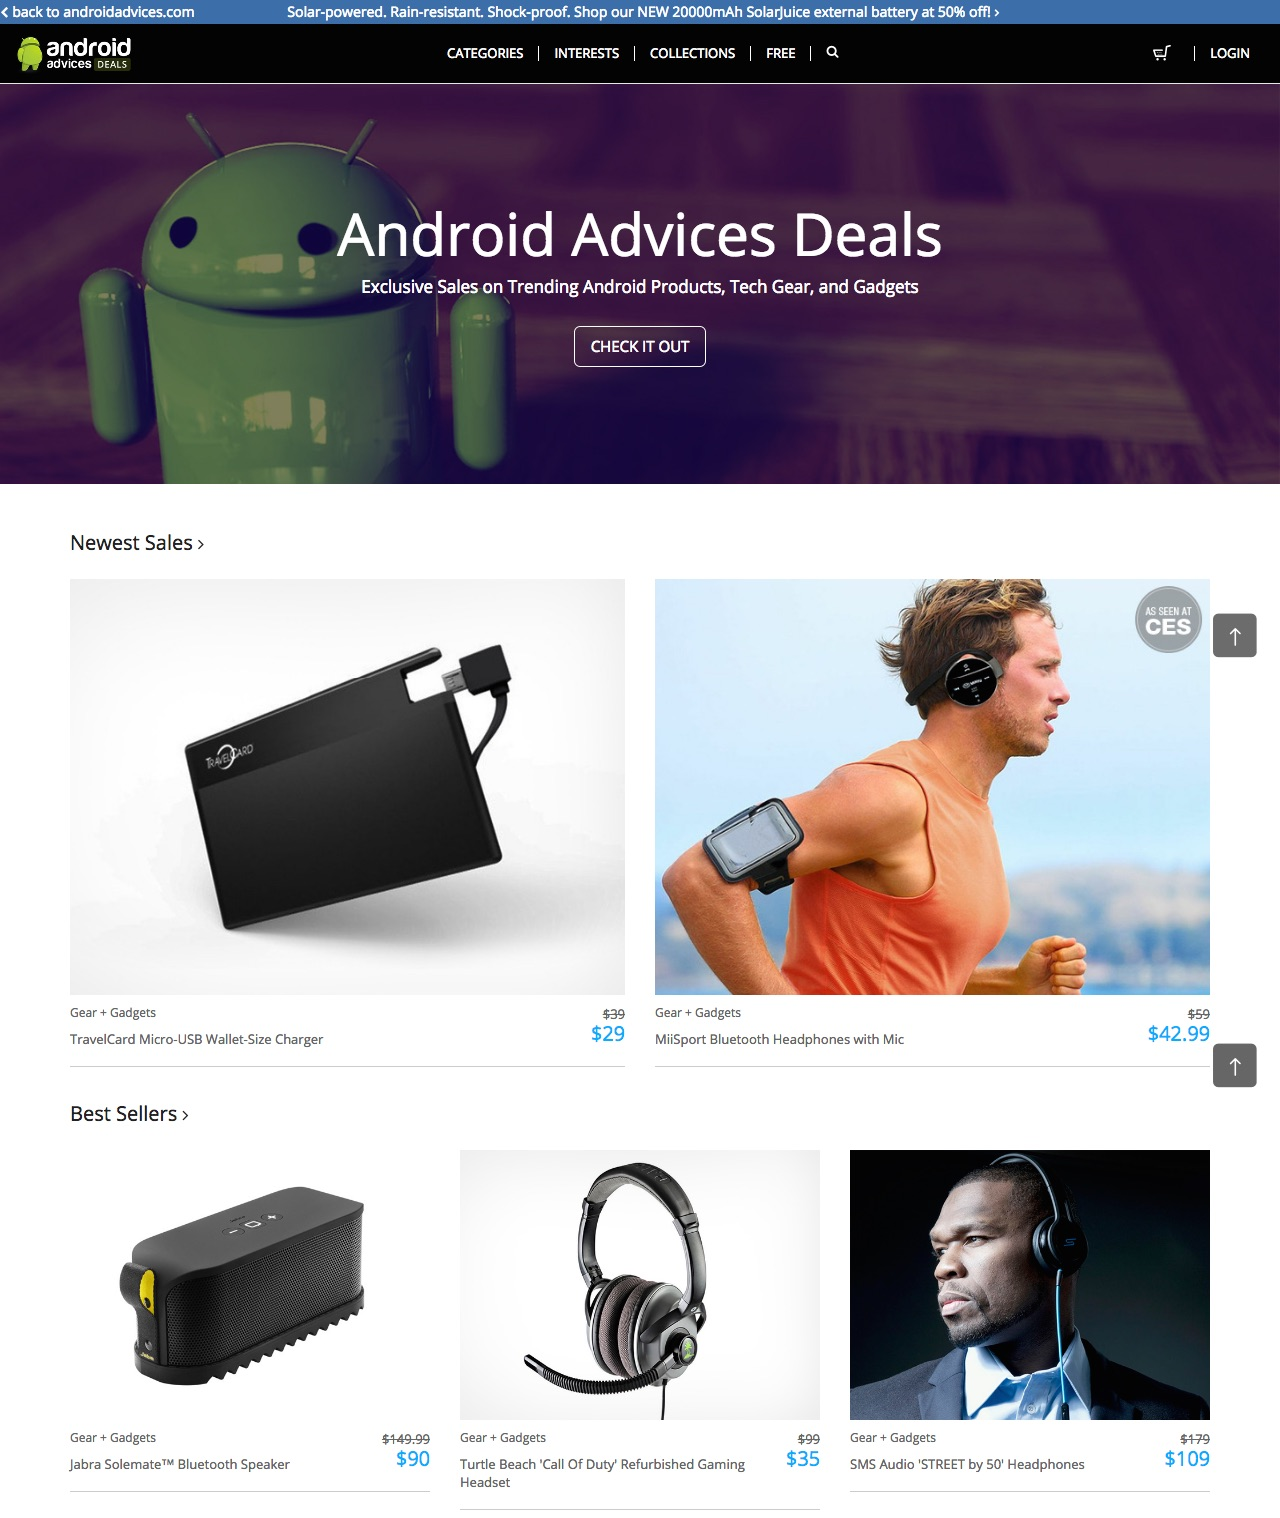 AndroidAdvices Deals